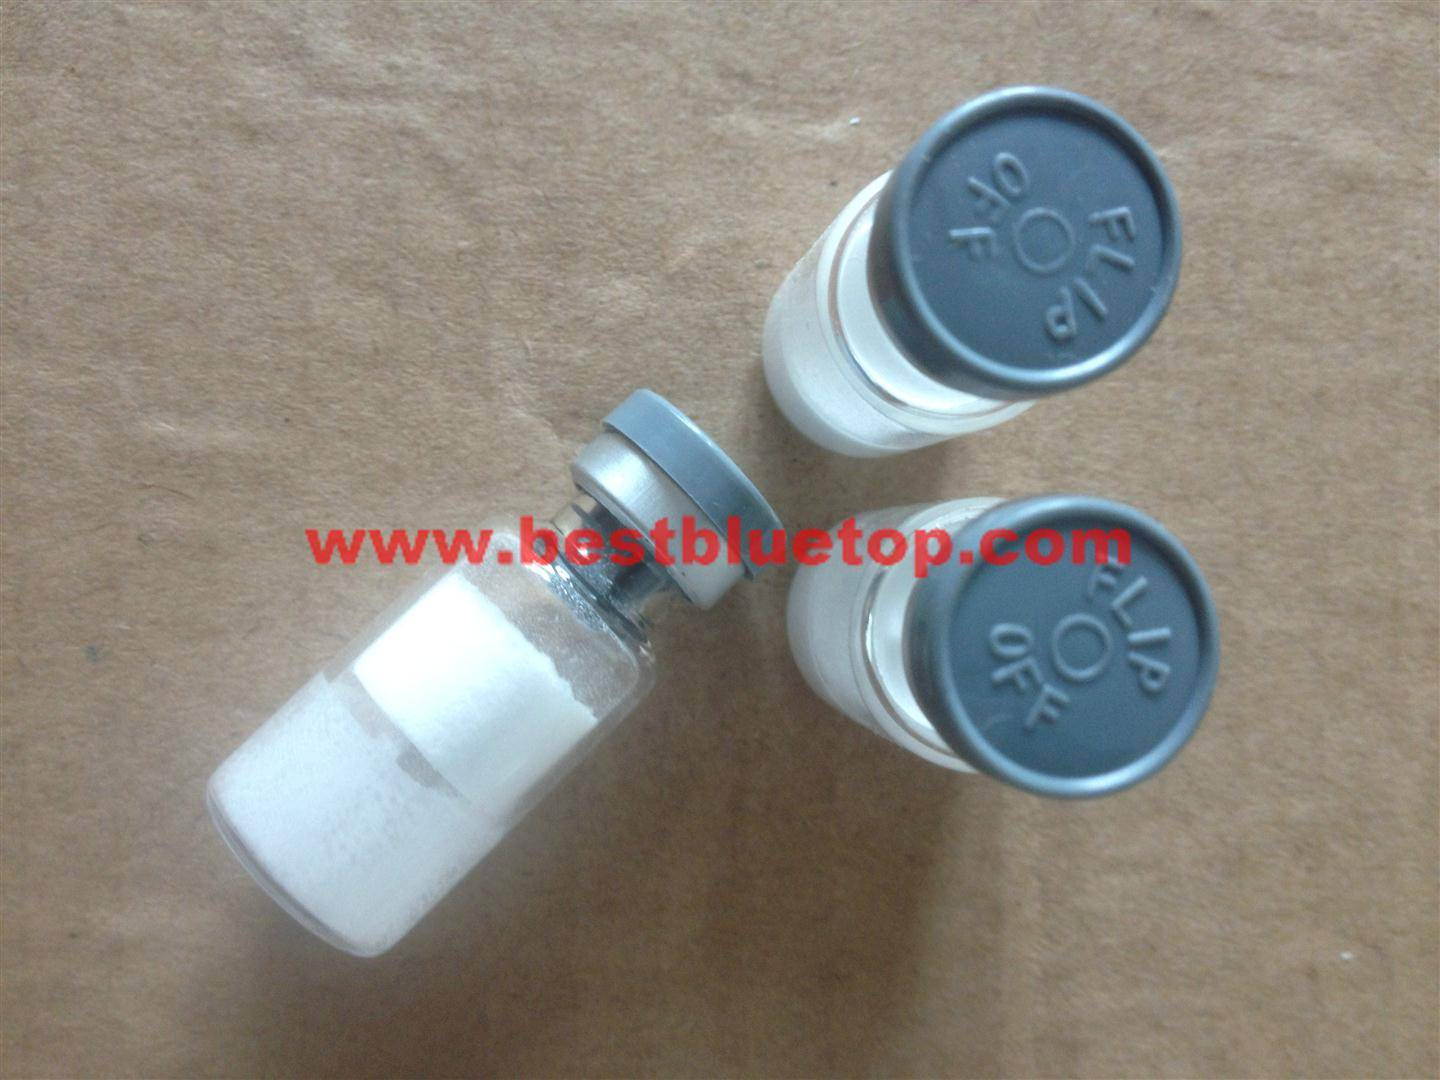 hgh blood serum test 30-35,98% purity,only high quality,delivery guaranteed